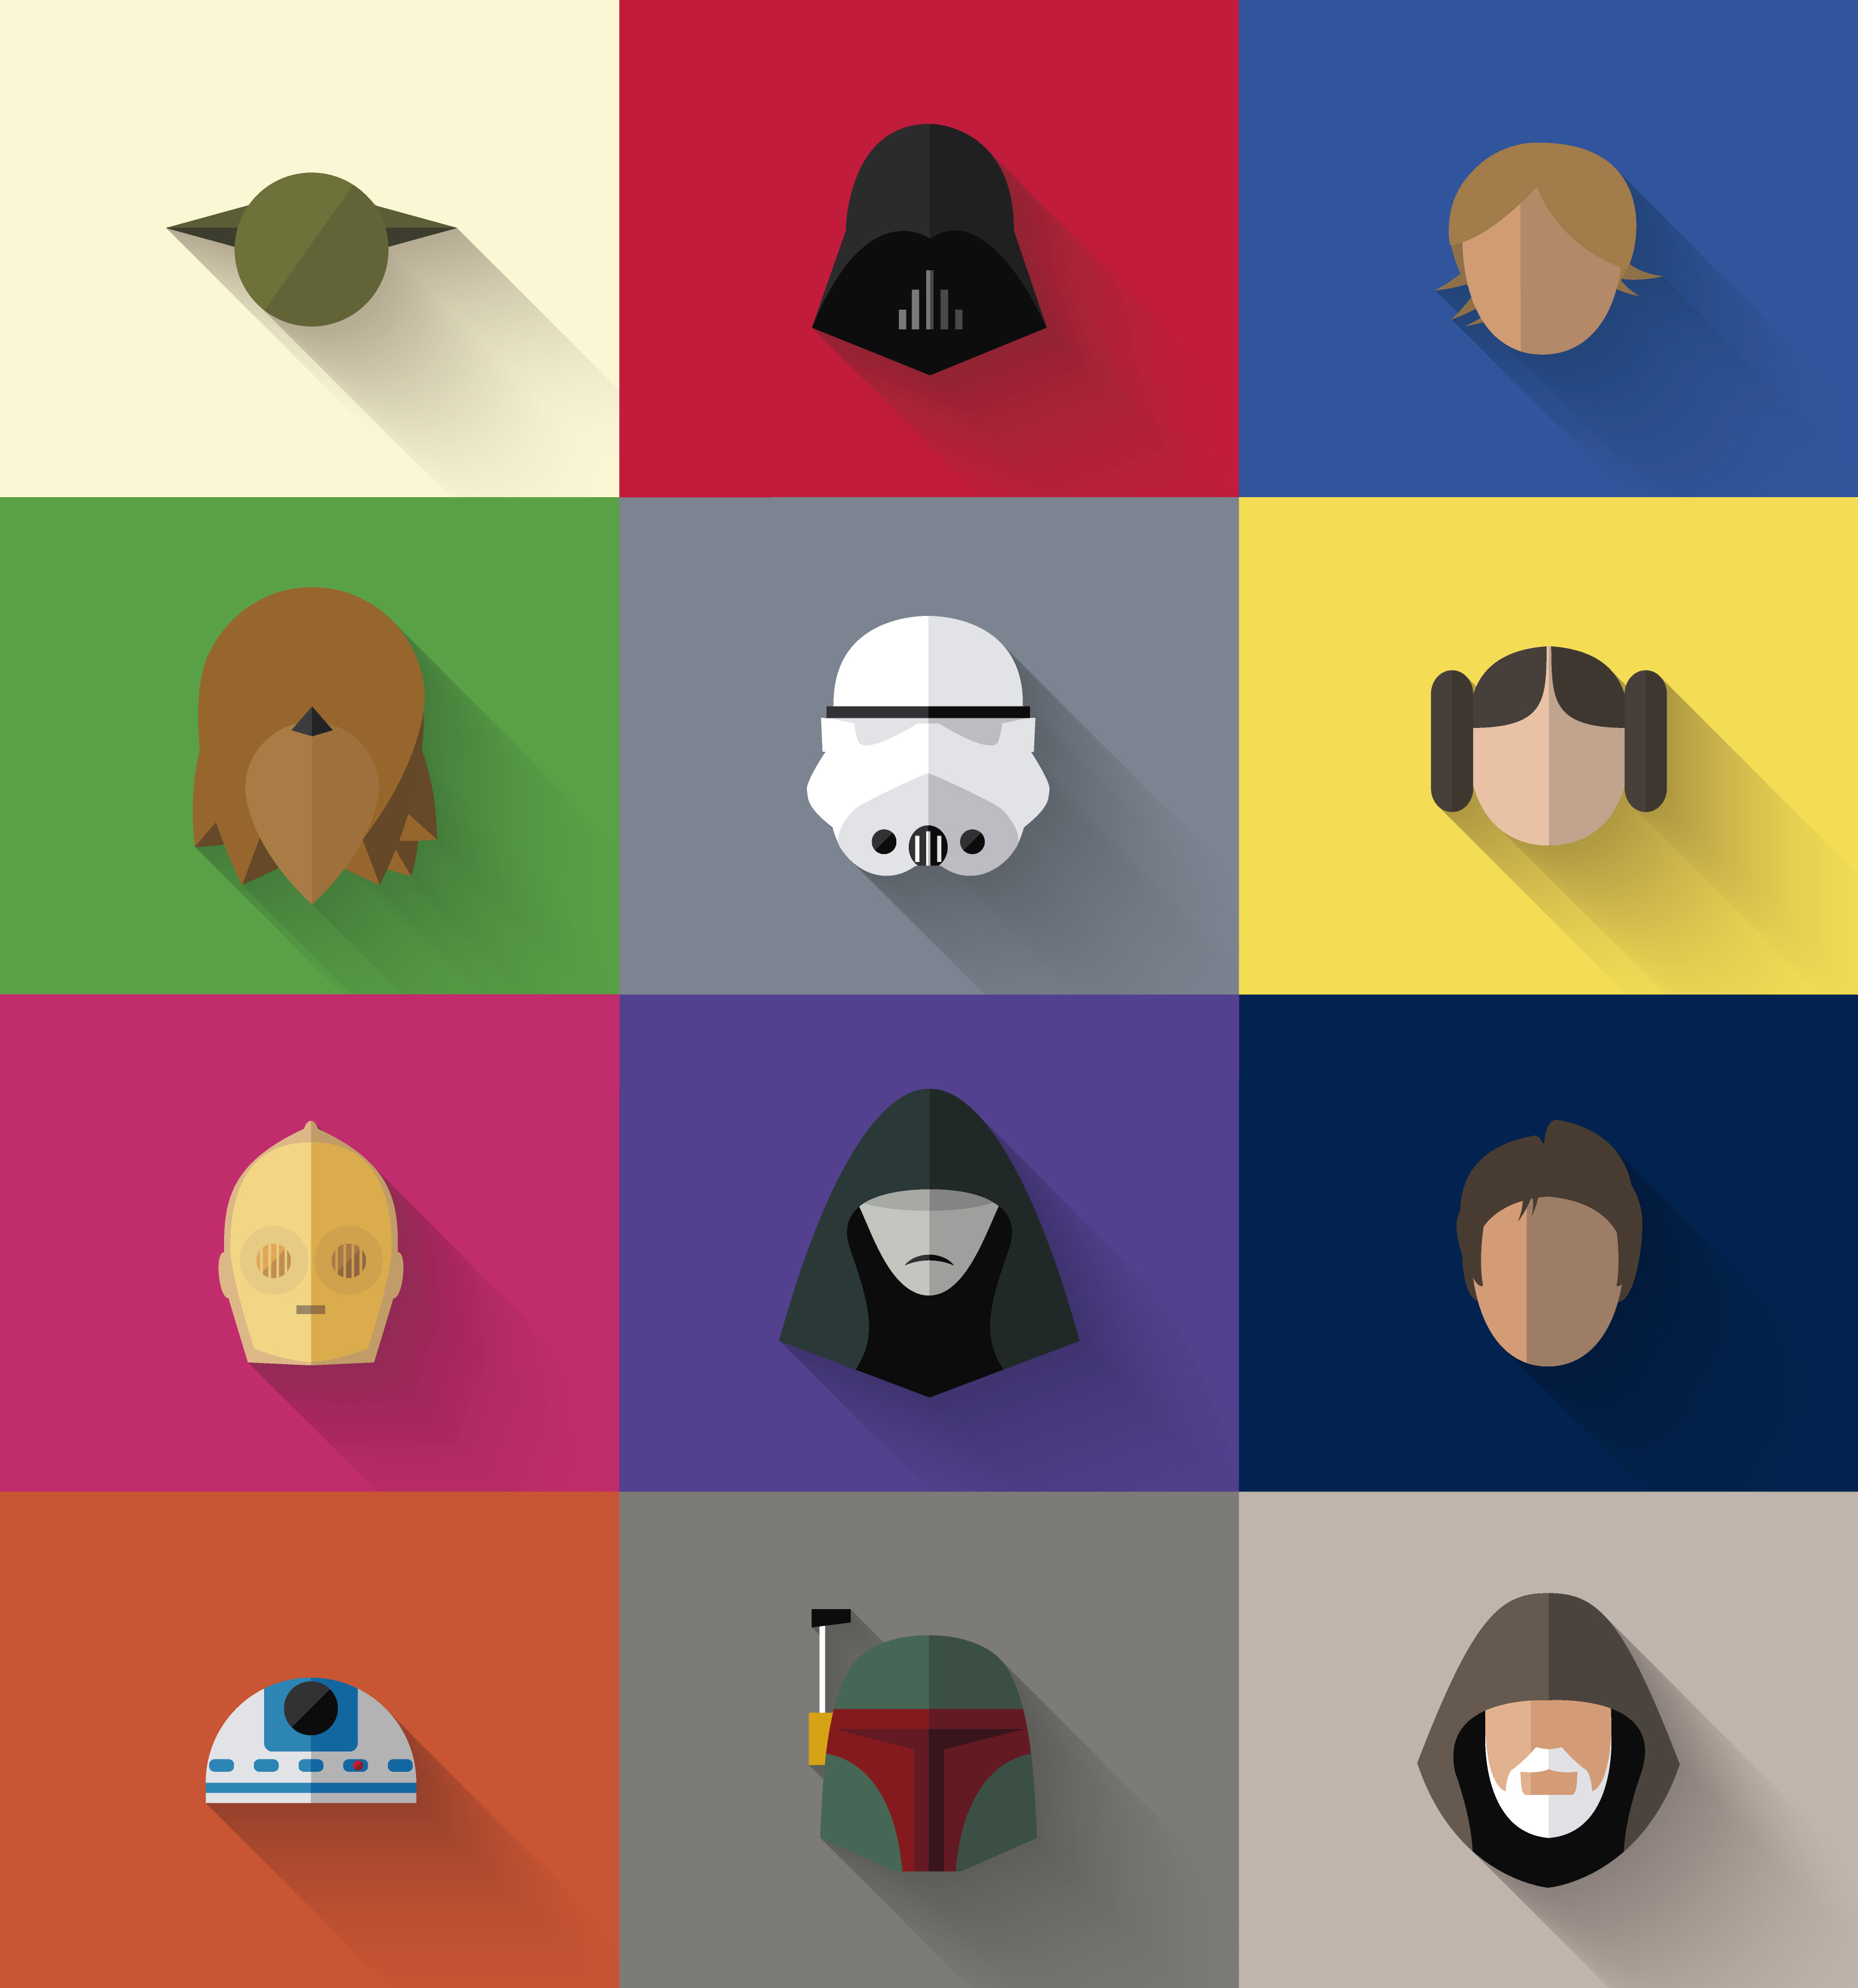 Character Design Icon : Star wars quot flat character icons — geektyrant